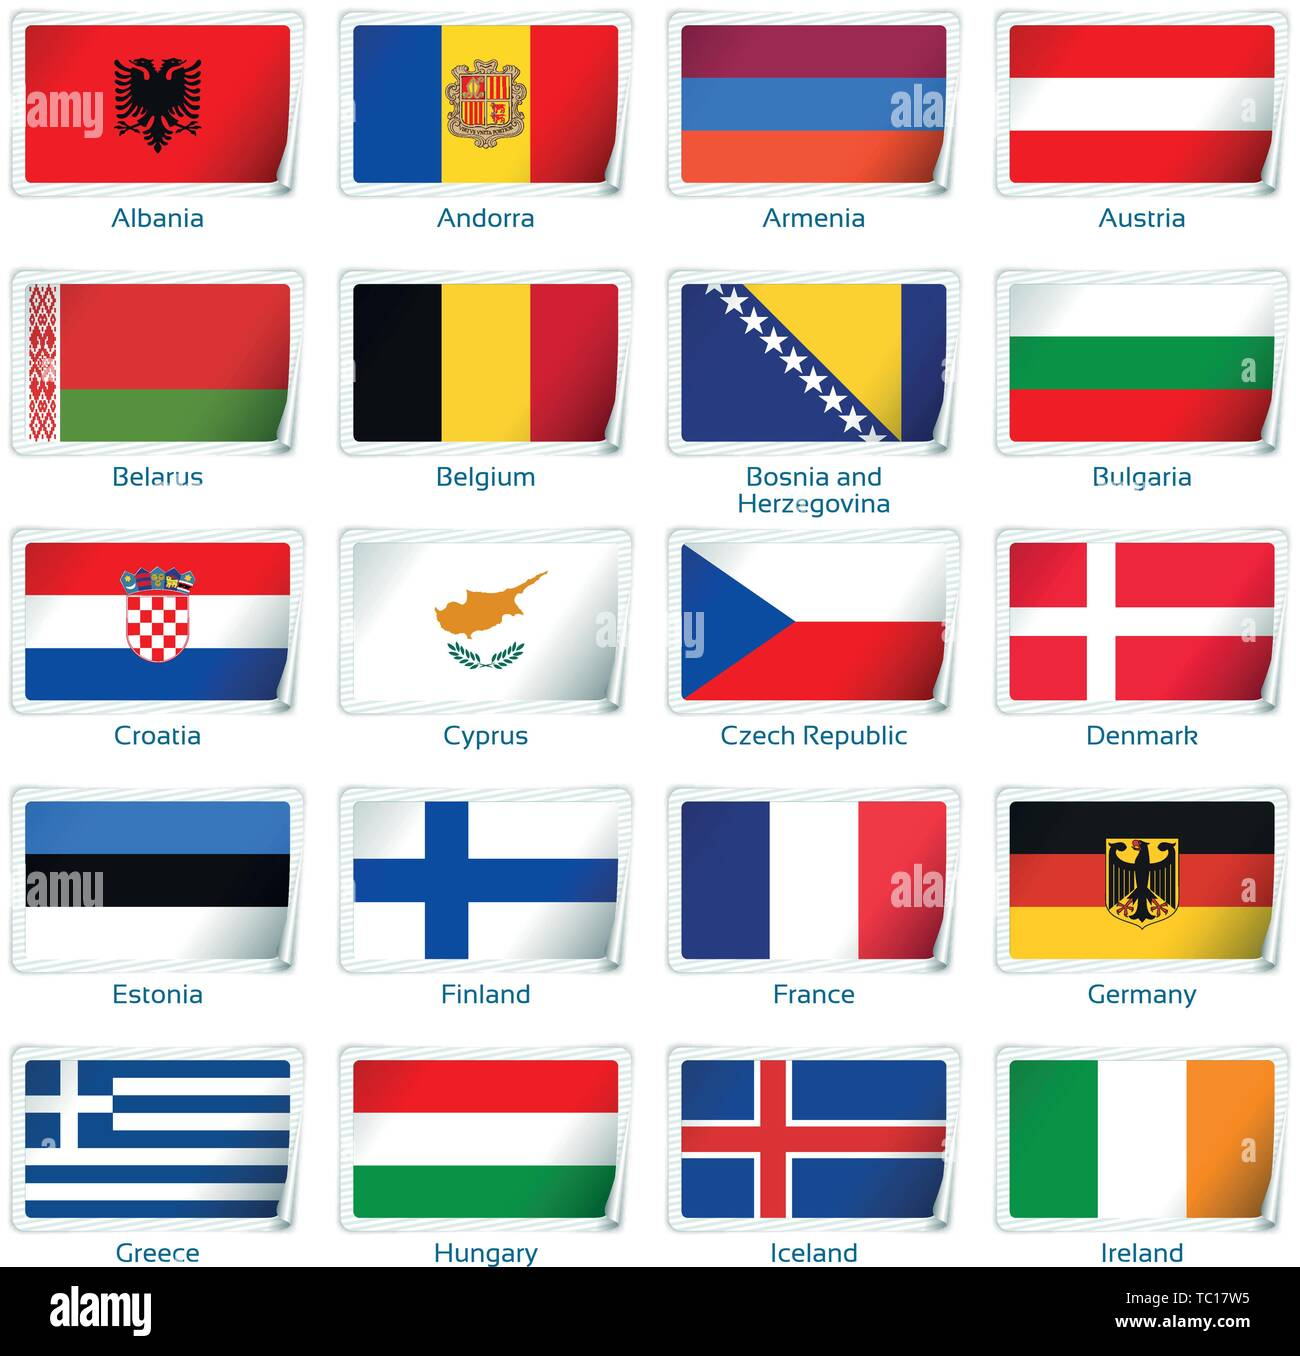 Sticker flags Europe one. Vector illustration. 3 layers. Shadows, flat flag you can use it separately, sticker. Collection of 220 world flags. Accurate colors. Easy changes. - Stock Vector